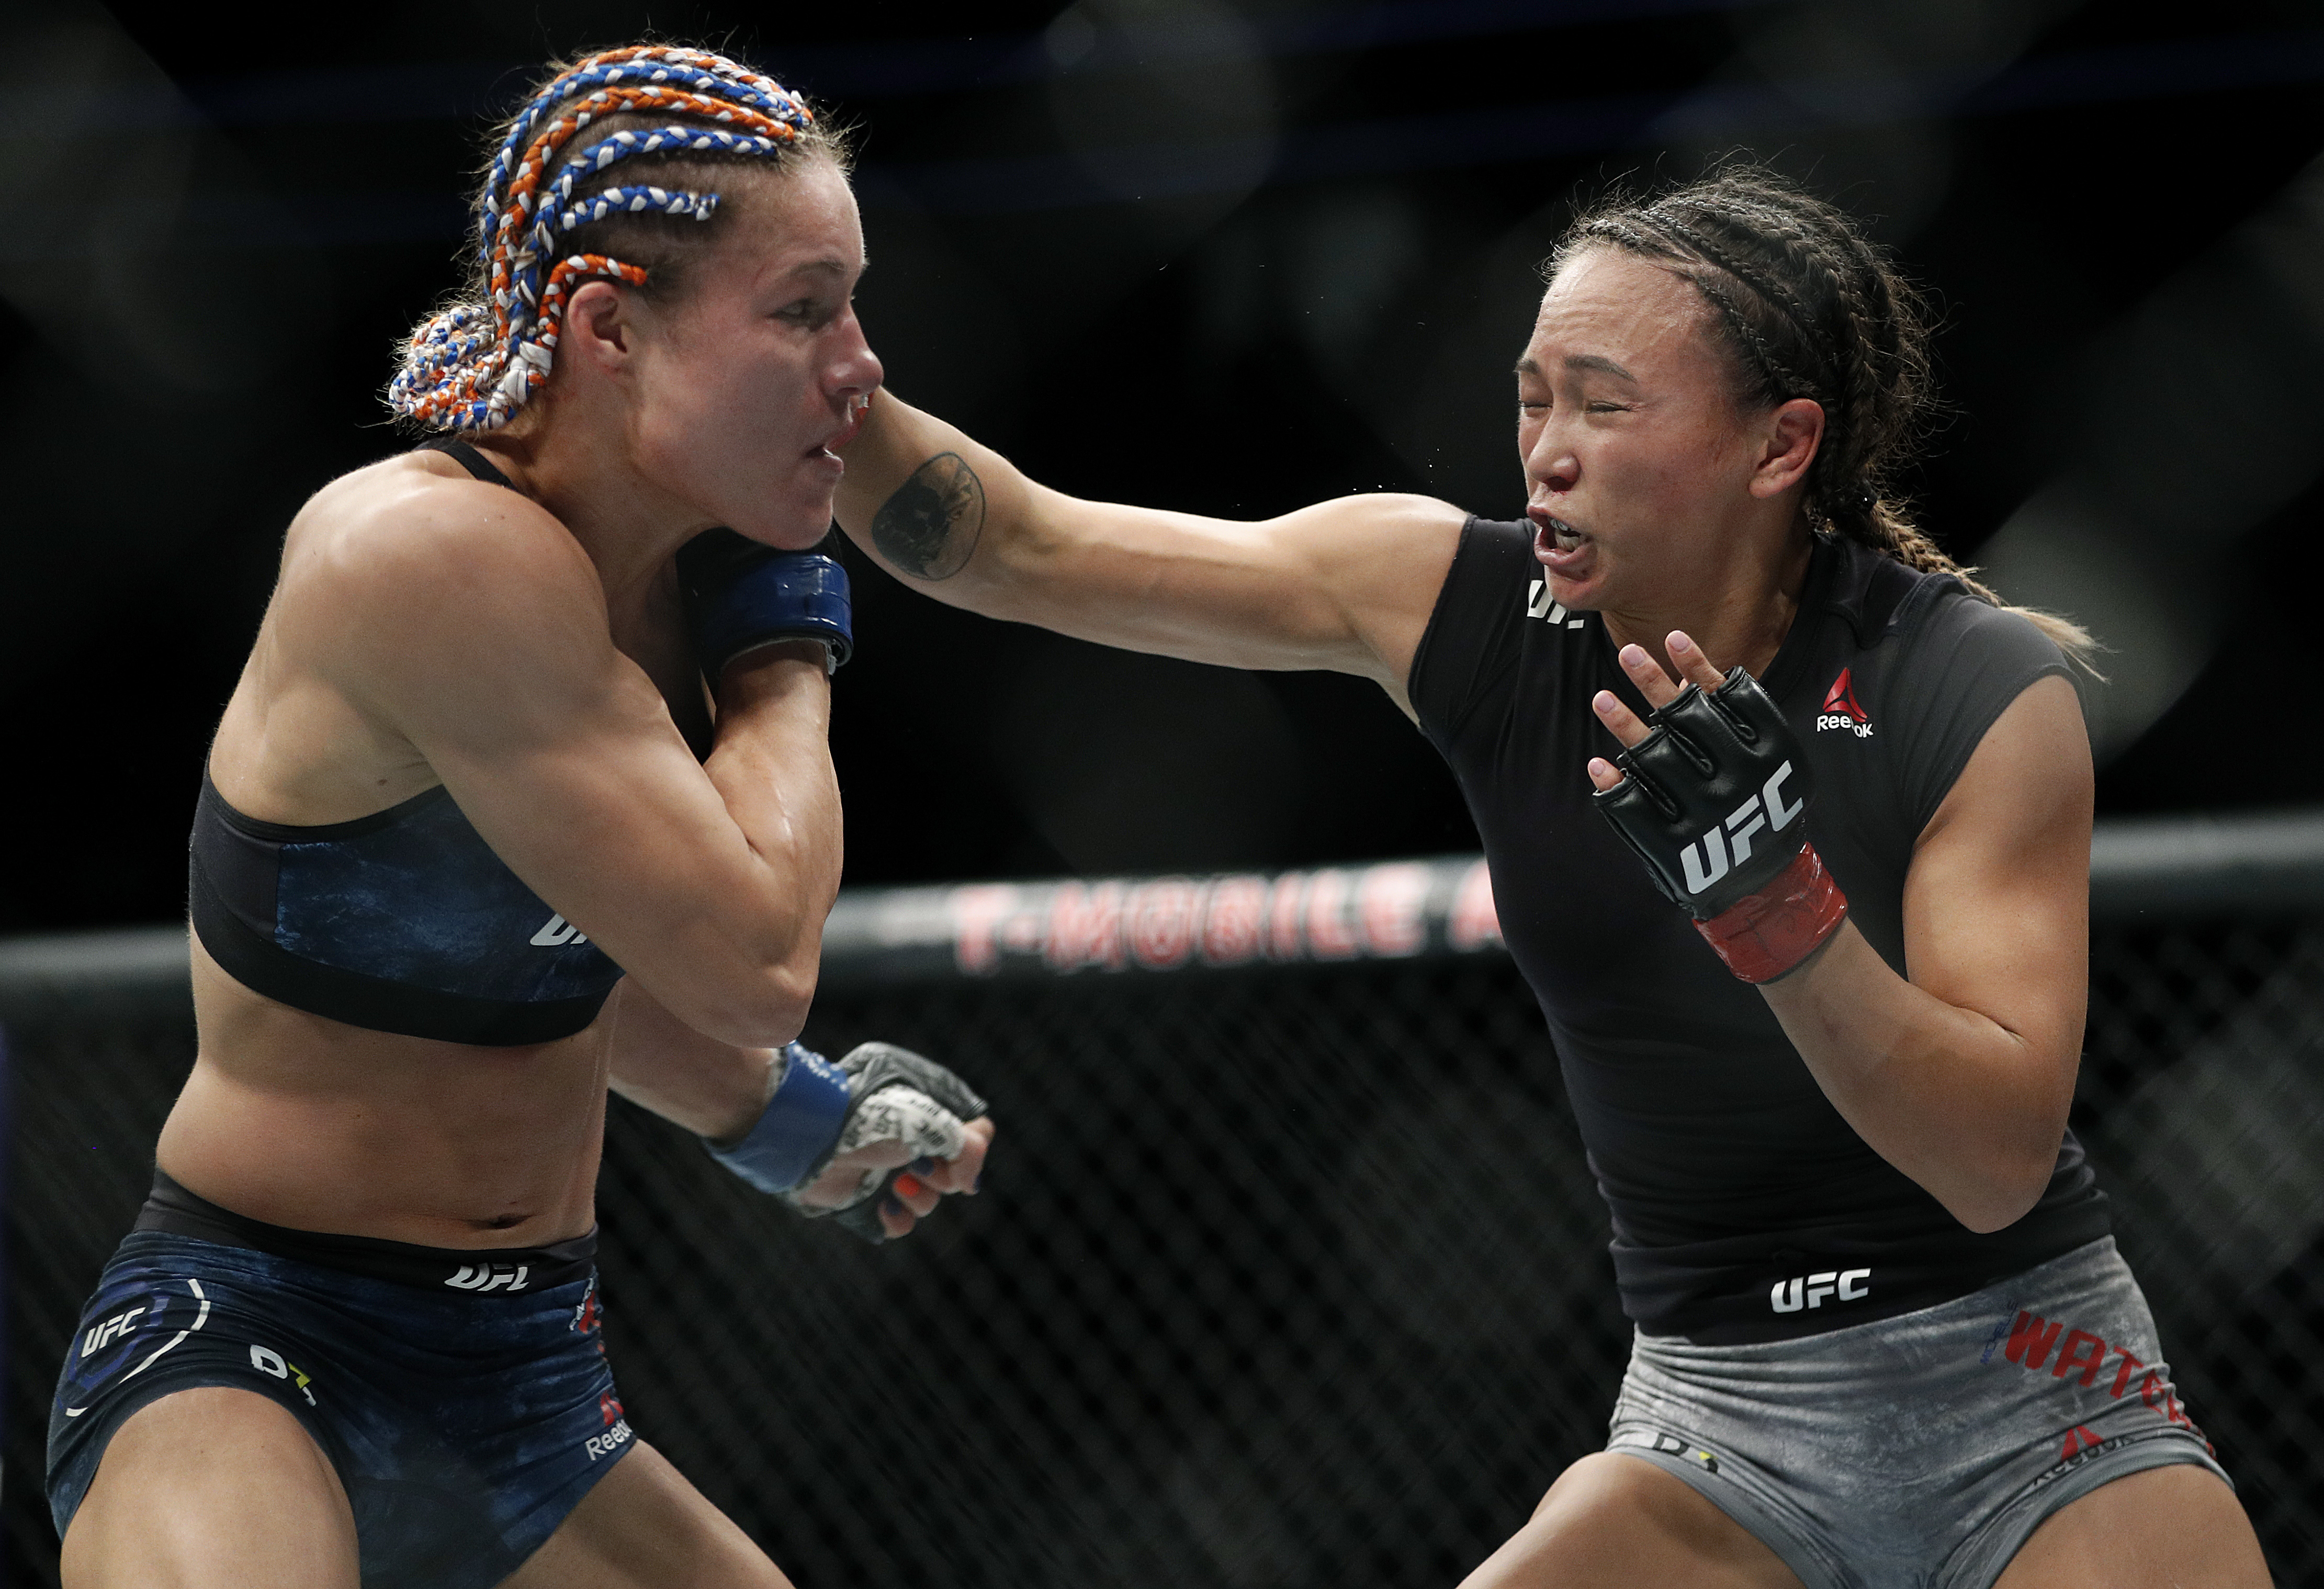 Waterson Plans To Make Things Work Out Albuquerque Journal My husband joshua gomez and my team. https www abqjournal com 1452186 waterson weighed pros and cons opted to fight at ufc 249 html